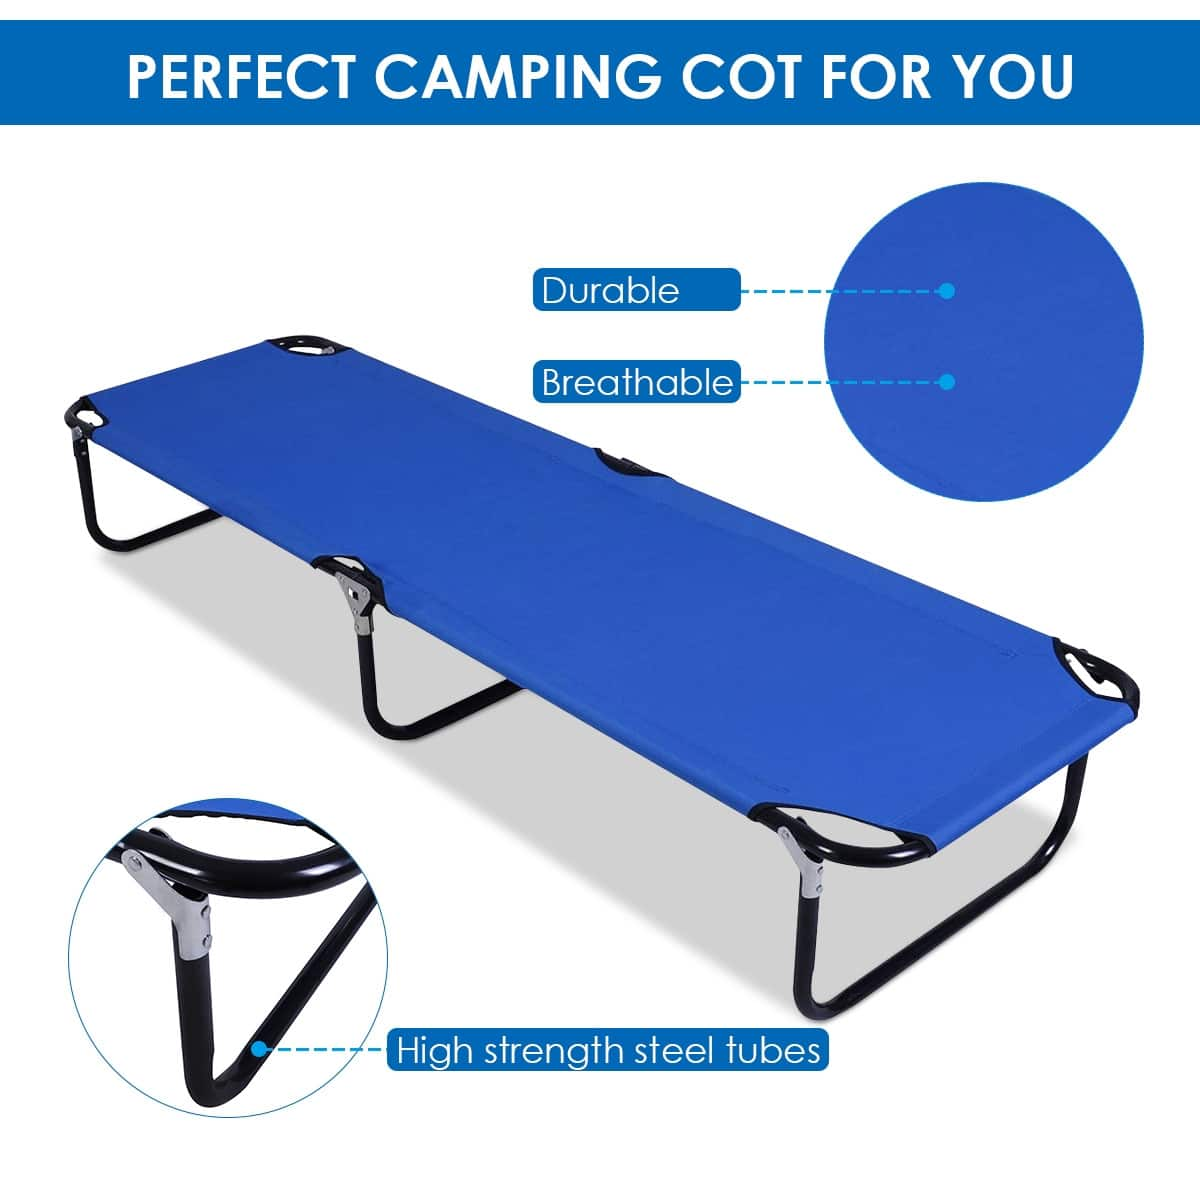 Outdoor Portable Blue Folding Camping Bed - $35.95 + Free Shipping